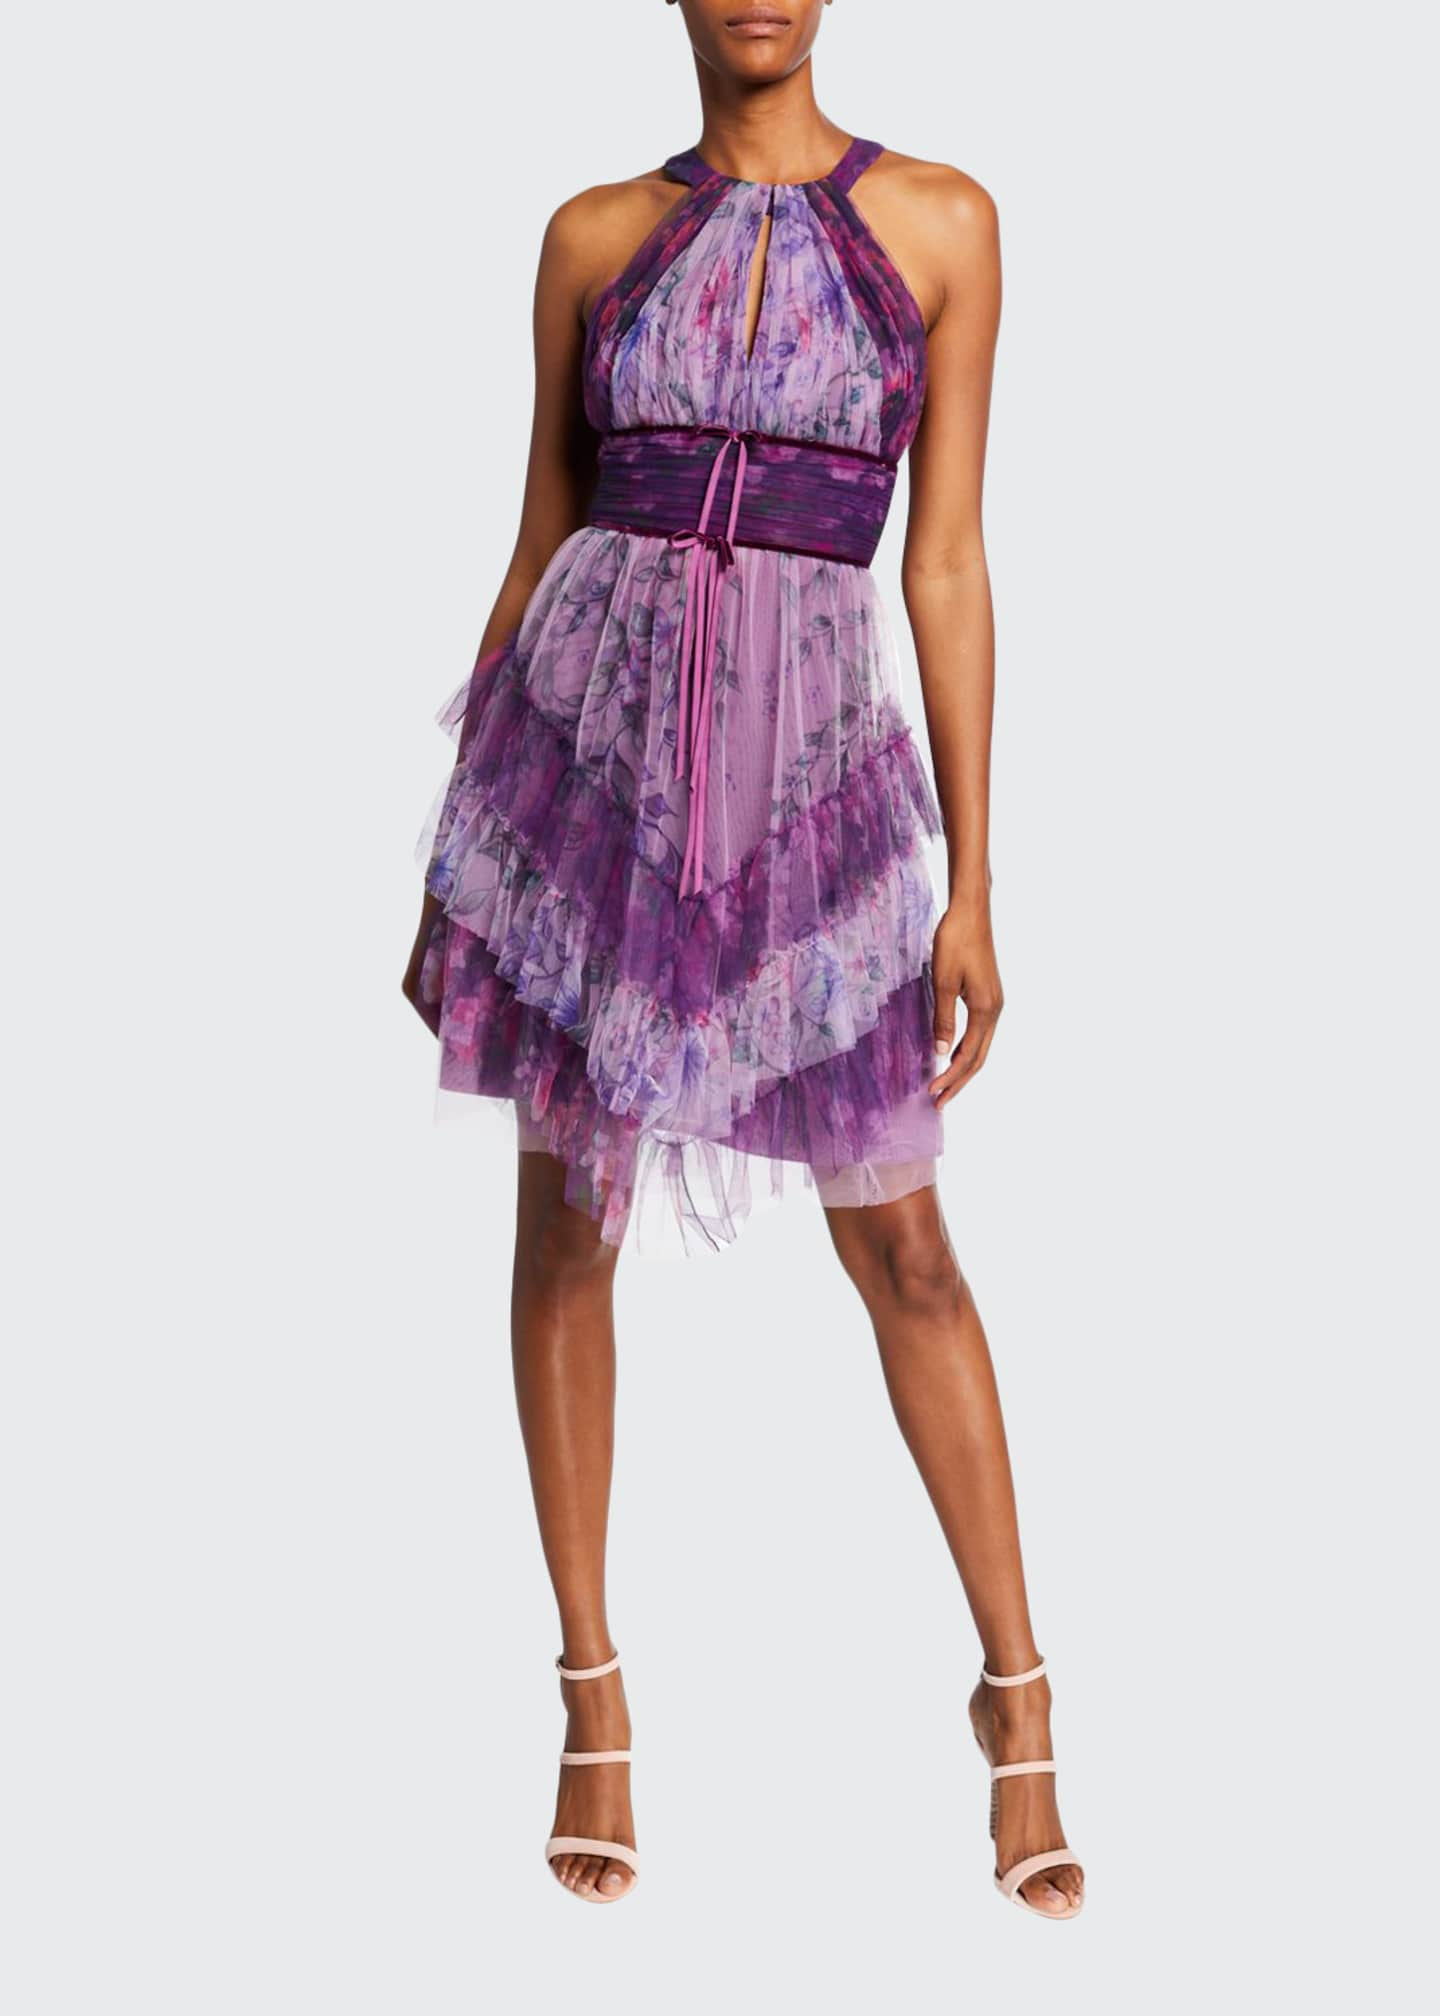 Marchesa Notte Colorblocked Floral-Printed Tulle Dress with